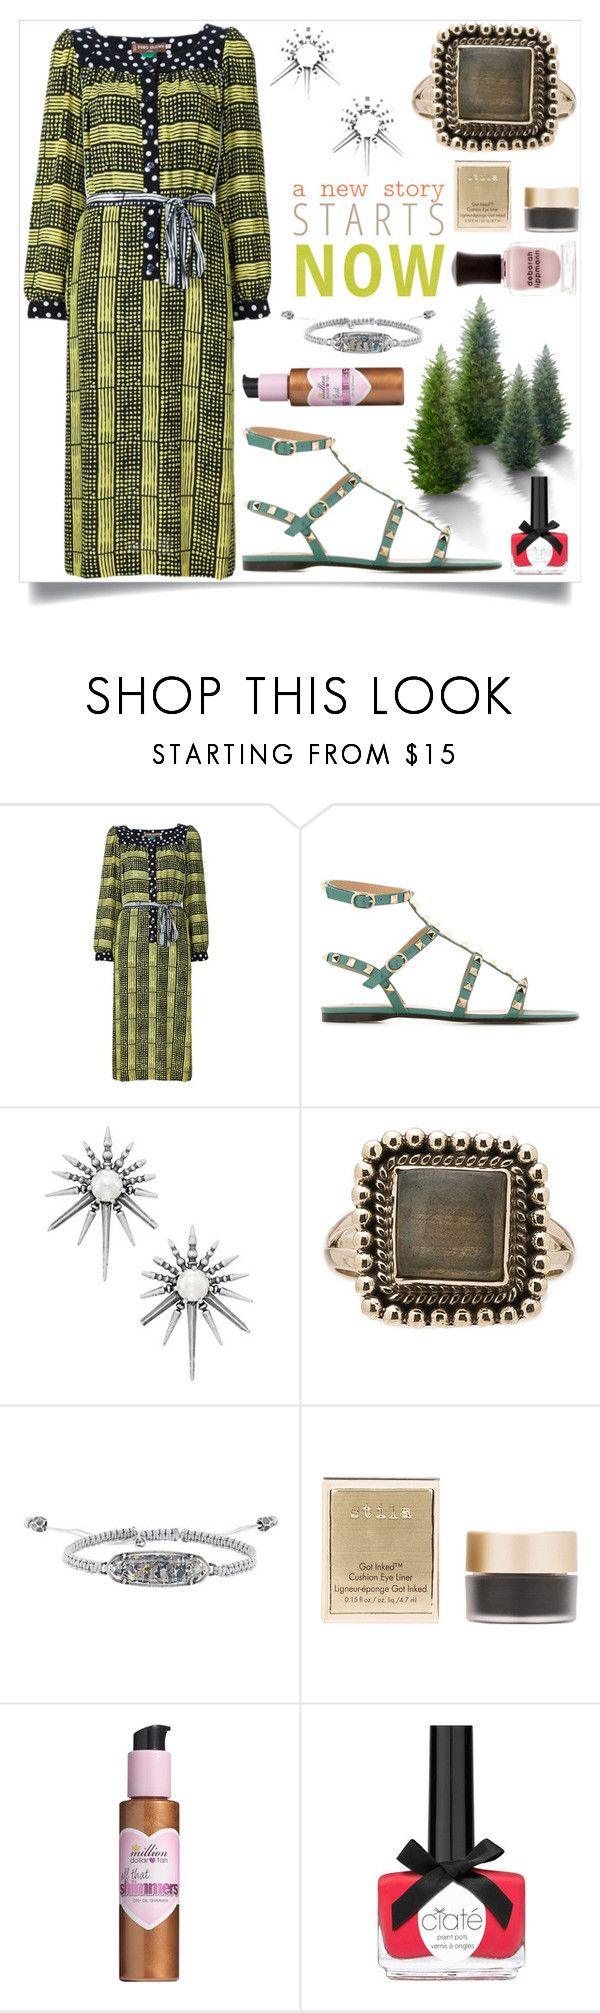 """""""A new story starts now"""" by camry-brynn ❤ liked on Polyvore featuring Duro Olowu, Valentino, Kendra Scott, Child Of Wild, Stila, Million Dollar Tan and Deborah Lippmann"""